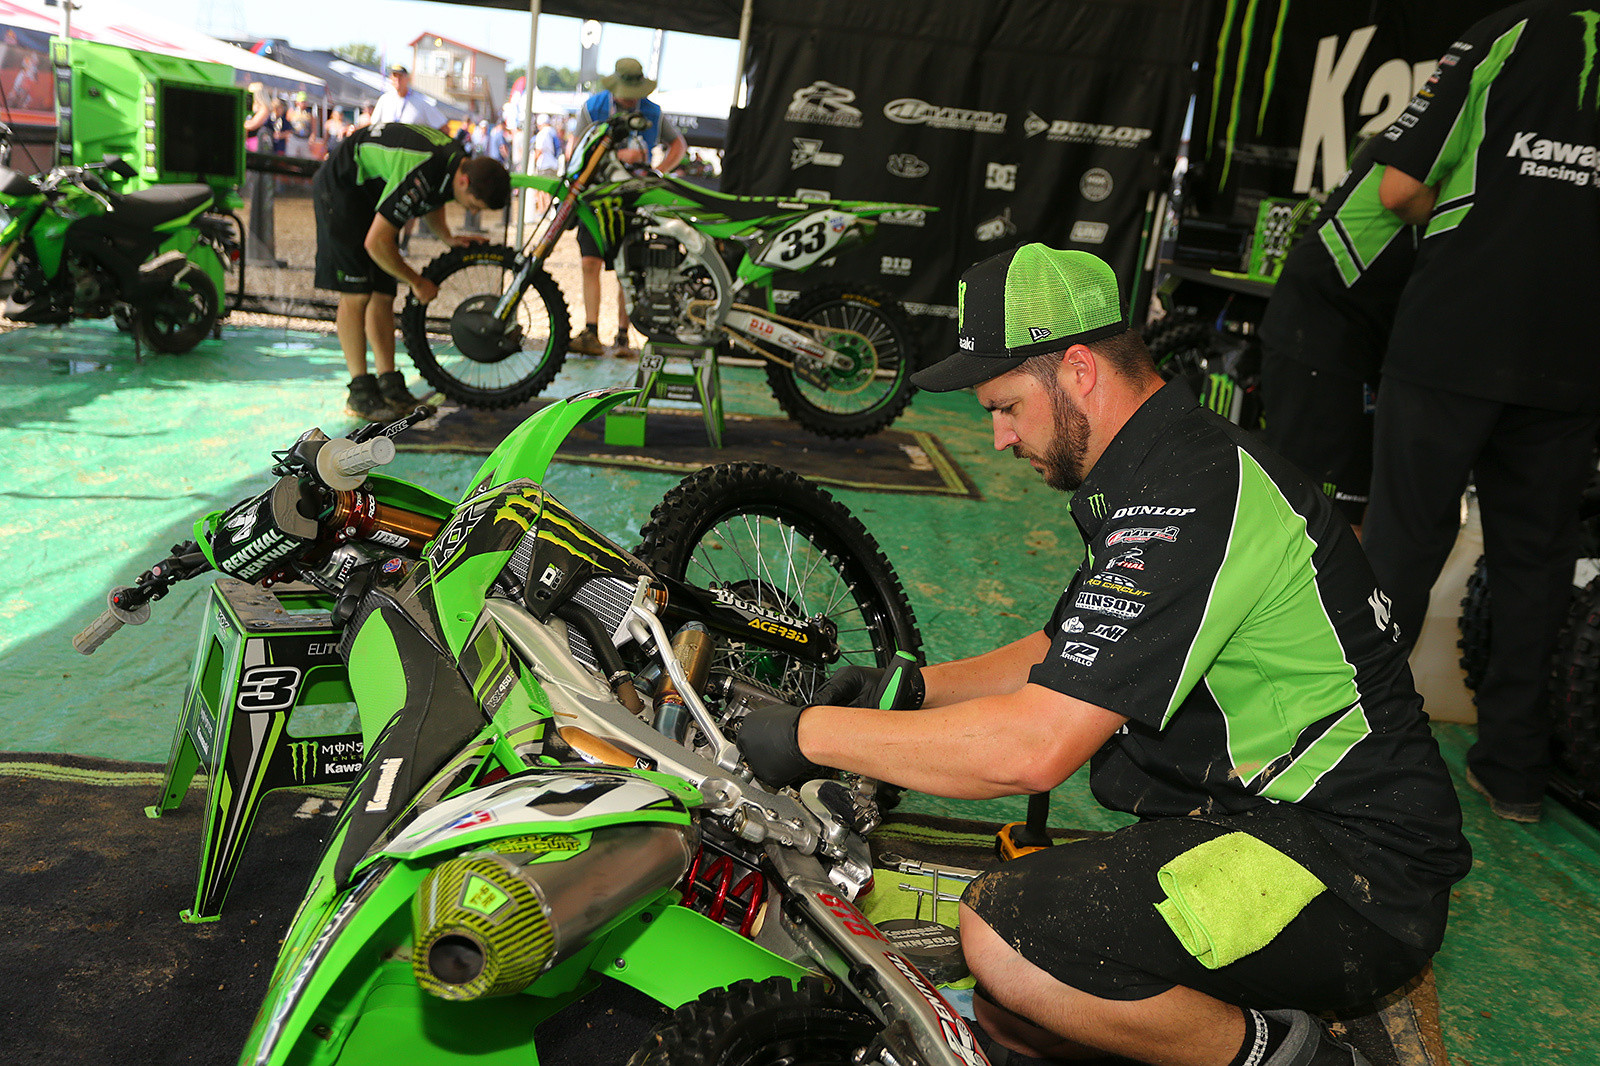 How does Monster Energy Kawasaki handle clutch plate management? They break in a set of plates in the first practice, which are then used for the second moto. That way they're less grabby on the starts. Second practice clutch plates are used for the first moto.